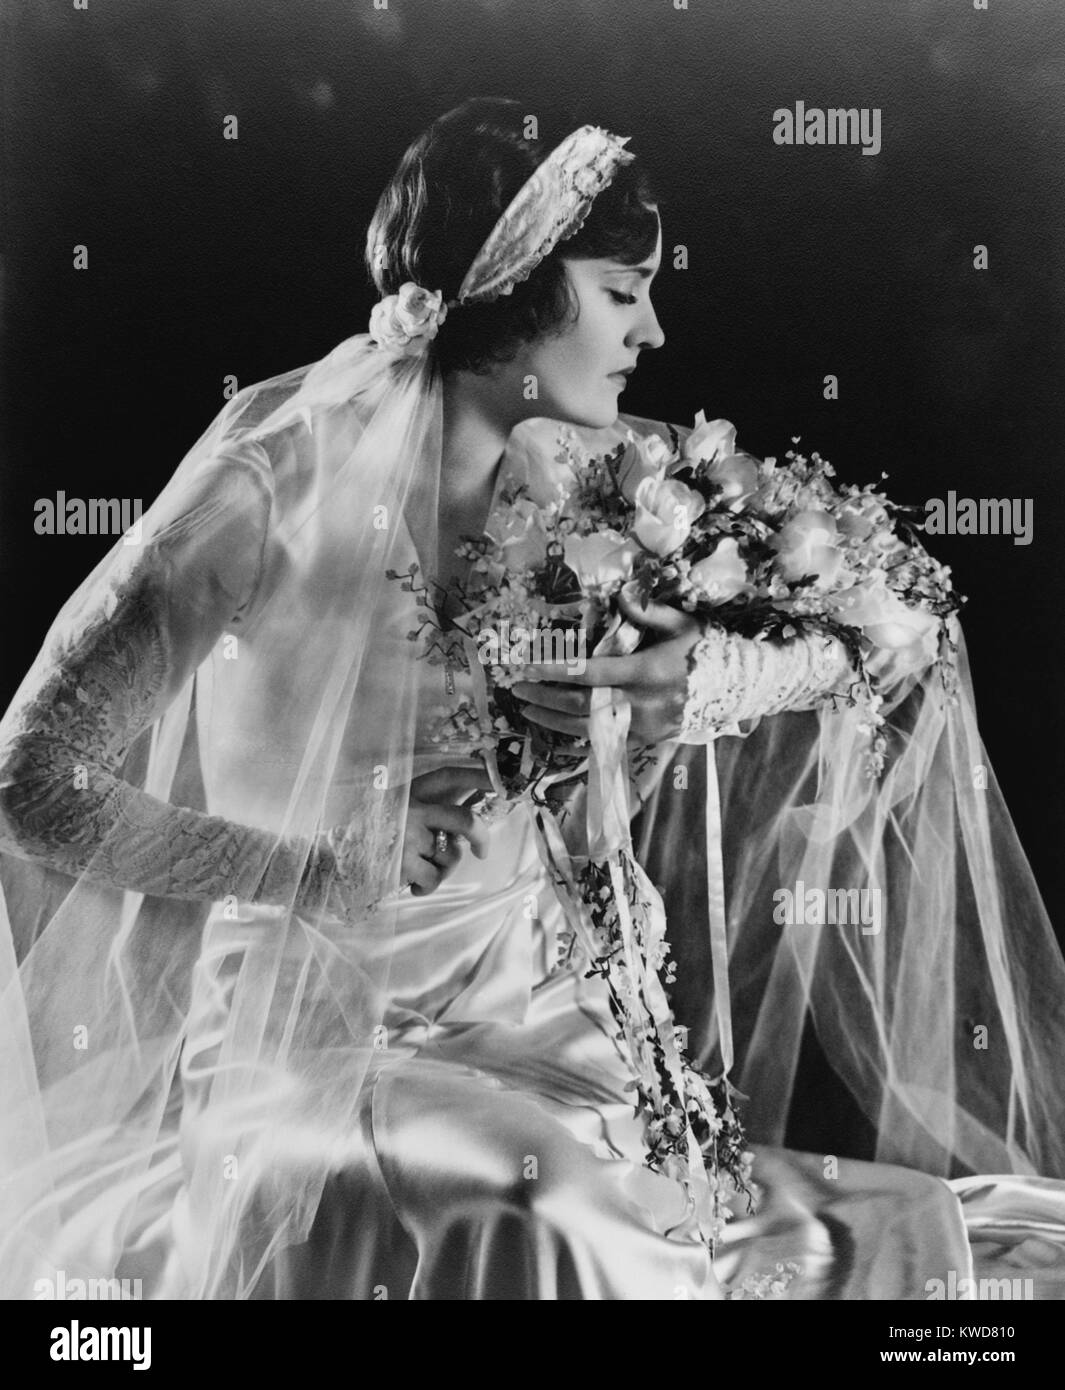 Wedding Flowers Black And White Stock Photos Images Alamy